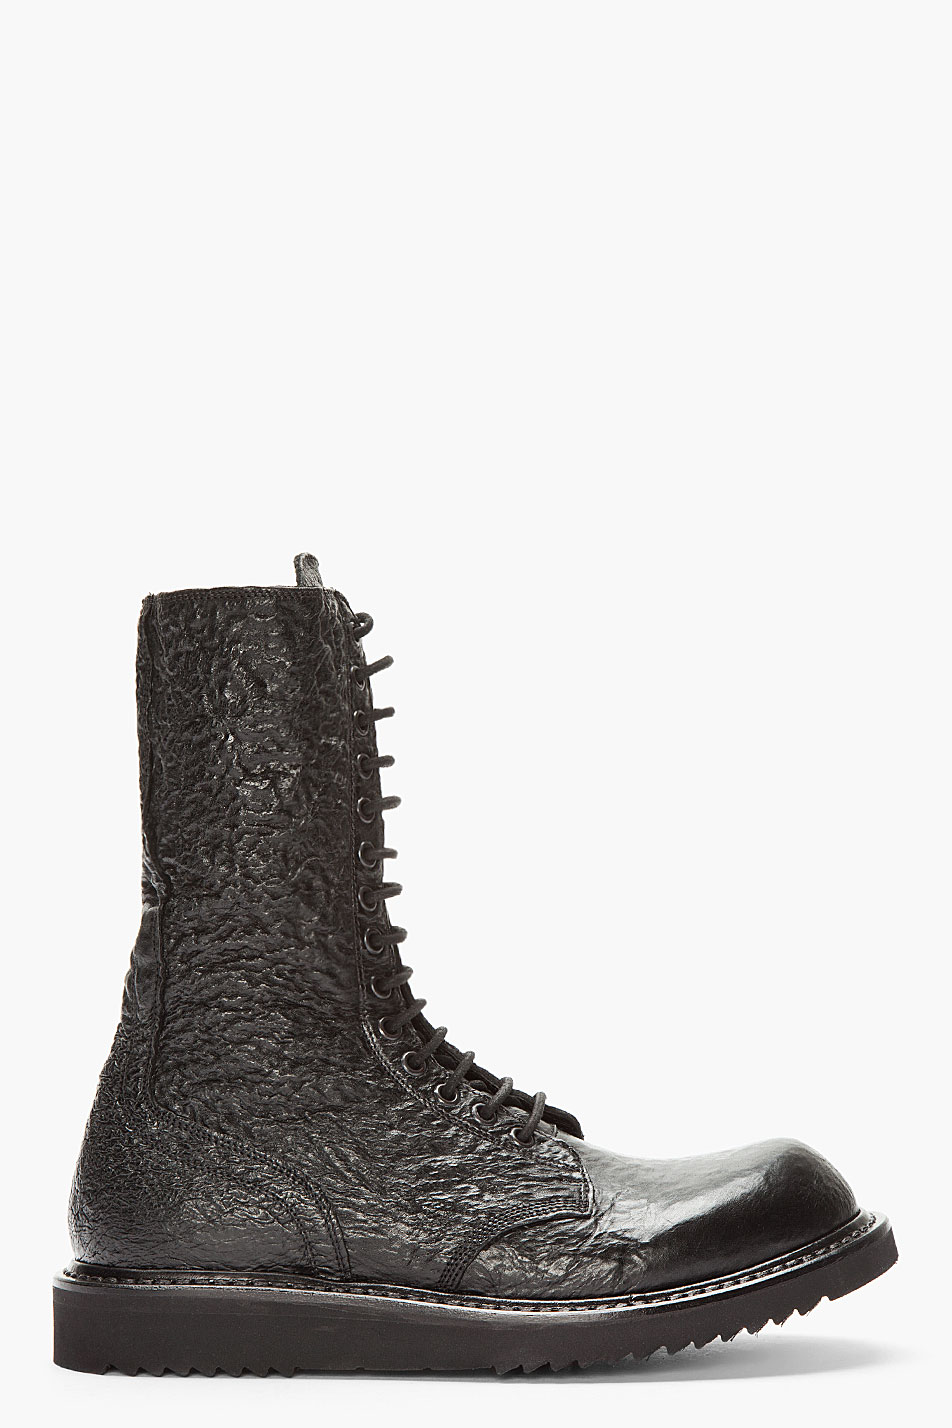 rick owens black textured leather combat boot in black for